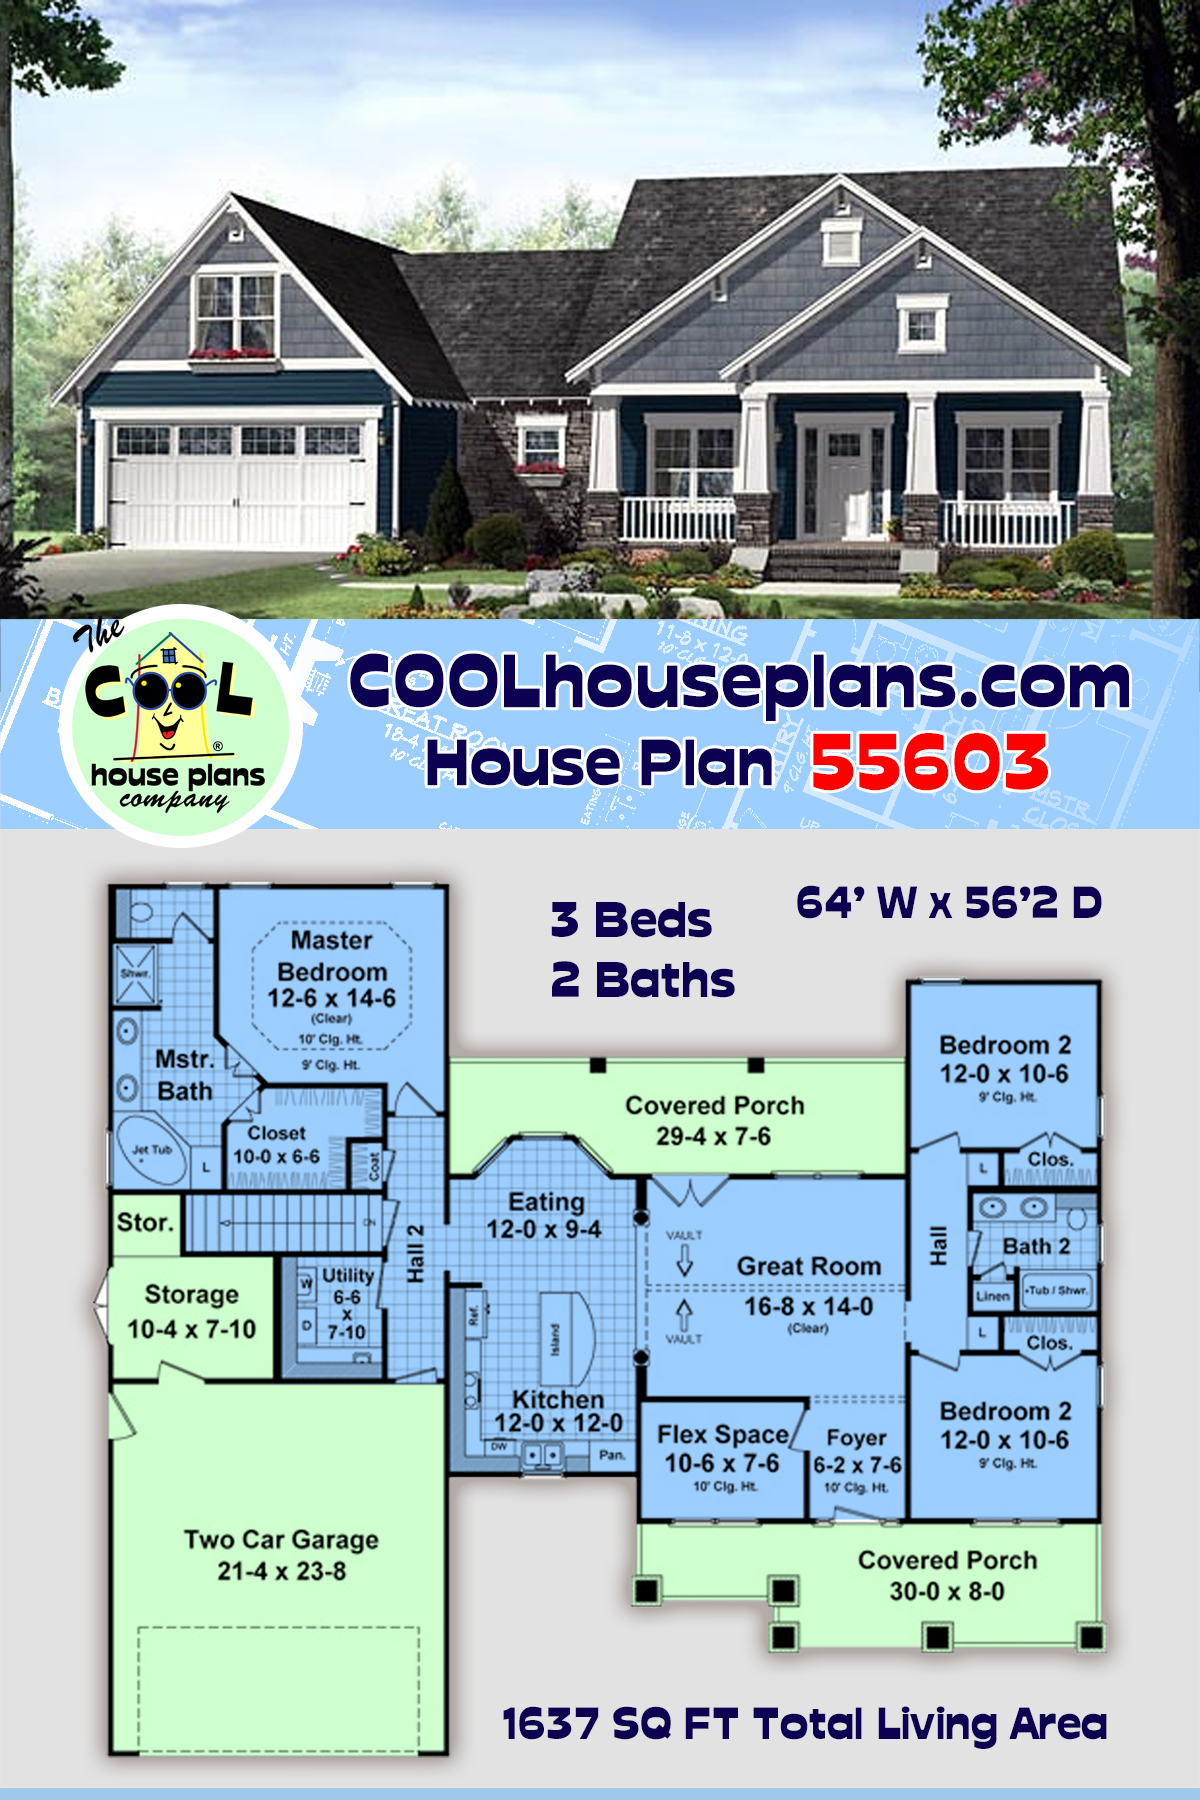 Cottage, Country, Craftsman House Plan 55603 with 3 Beds, 2 Baths, 2 Car Garage